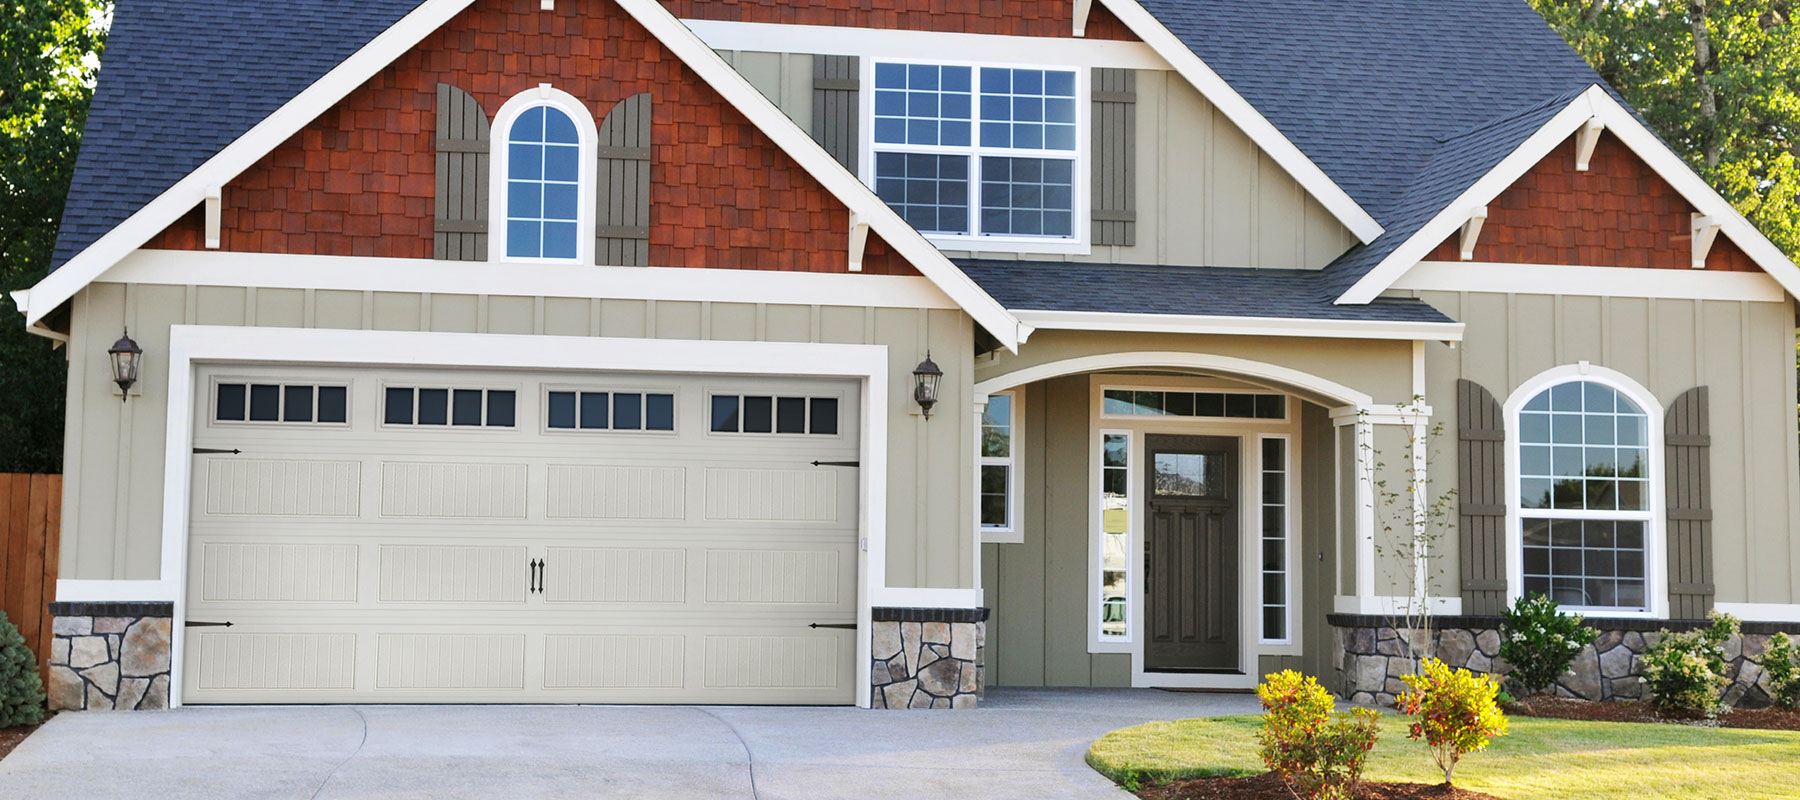 440/441 Long Grooved Panel Garage Door